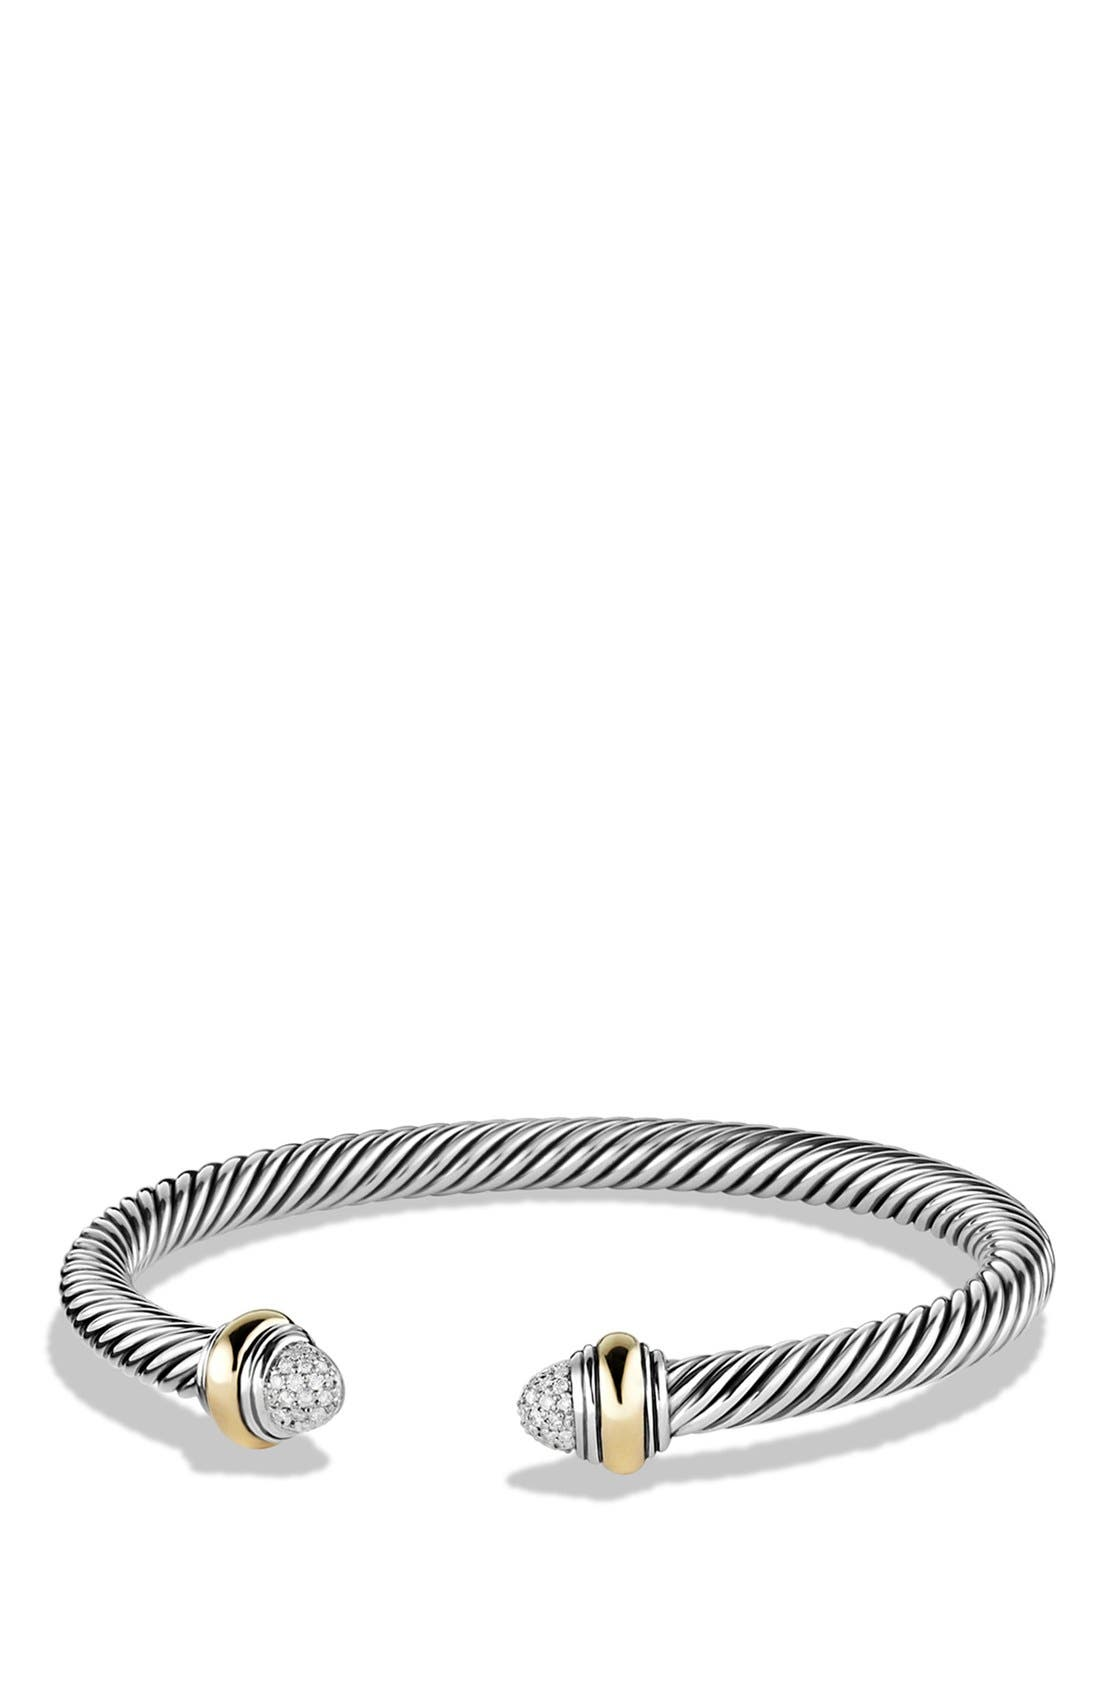 DAVID YURMAN Cable Classics Bracelet with Diamonds & 14K Gold, 5mm, Main, color, DIAMOND